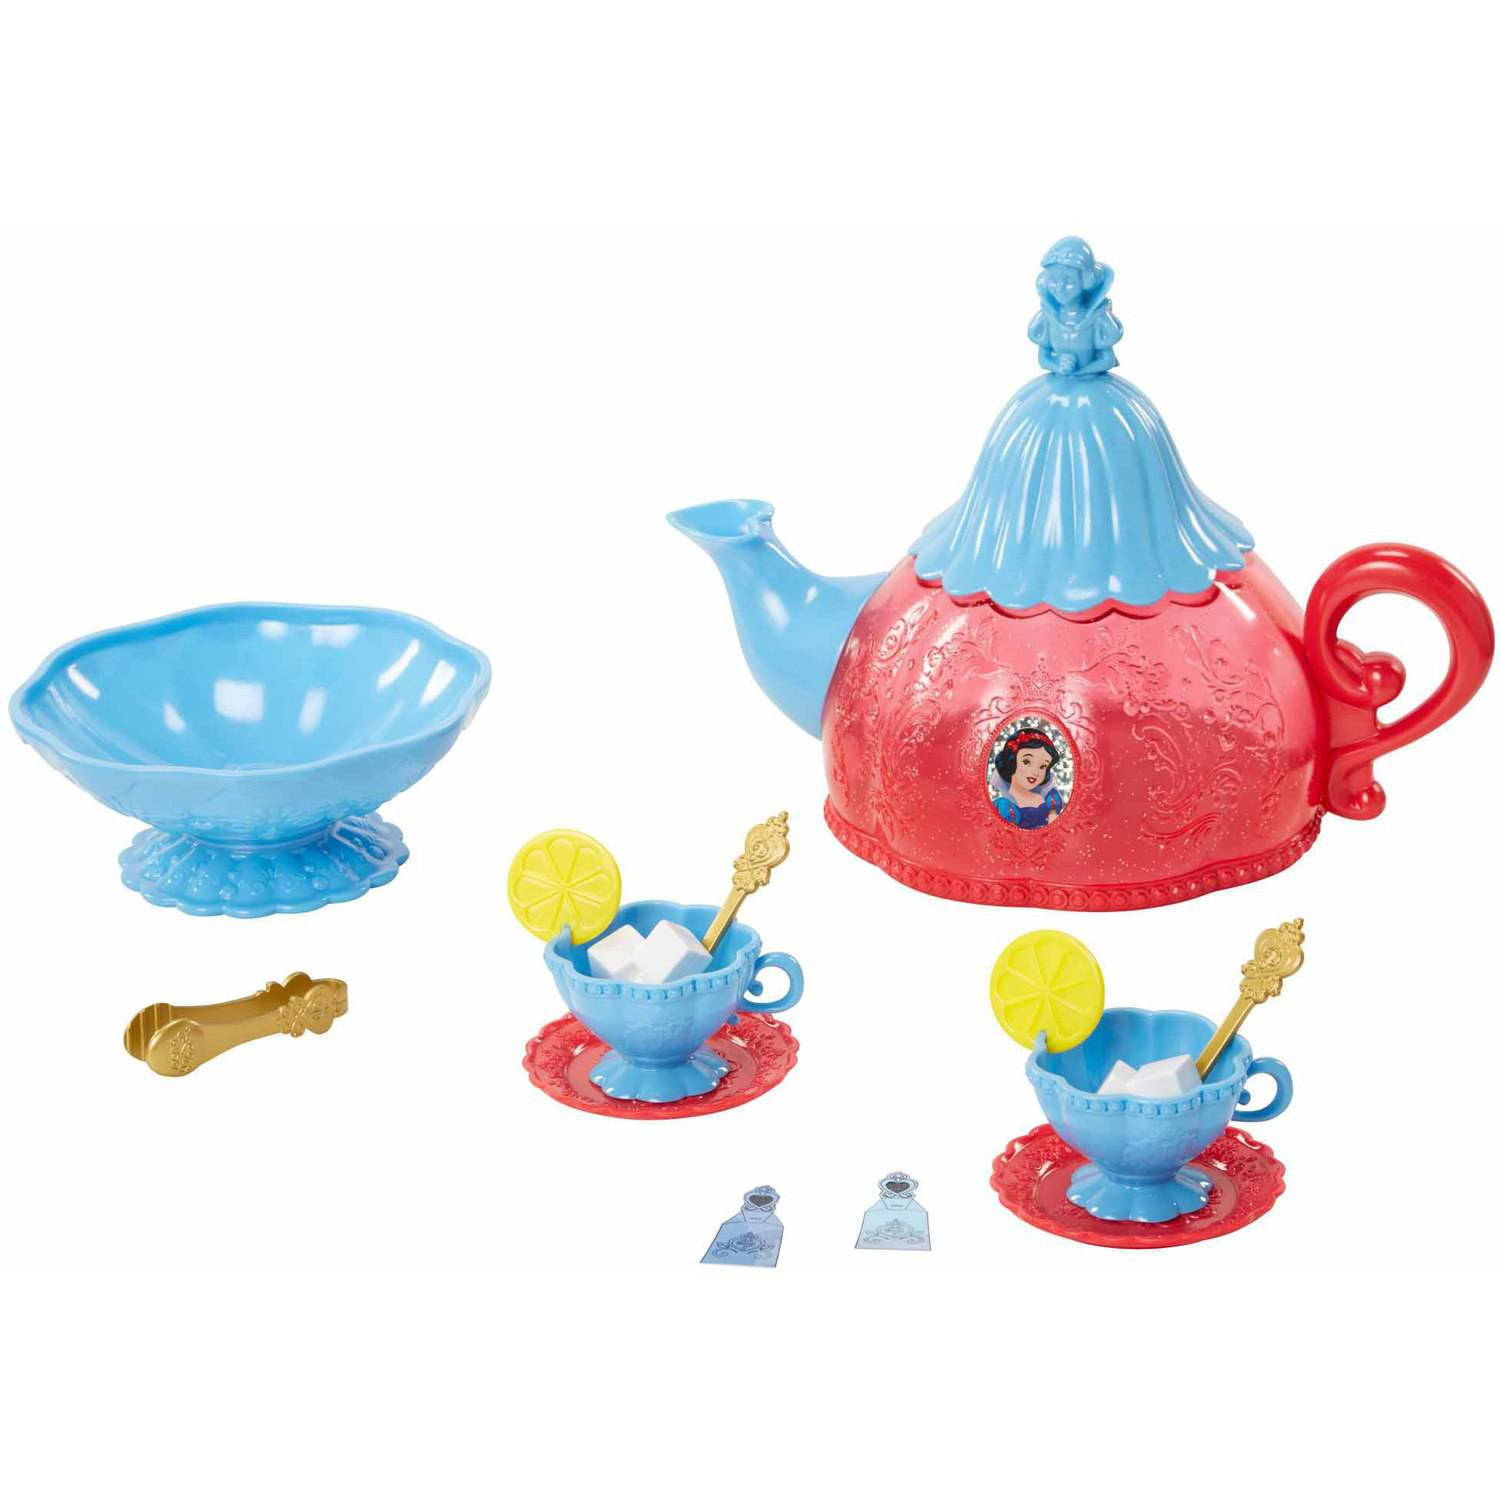 Disney Princess Snow White Stack and Store Tea Pot by